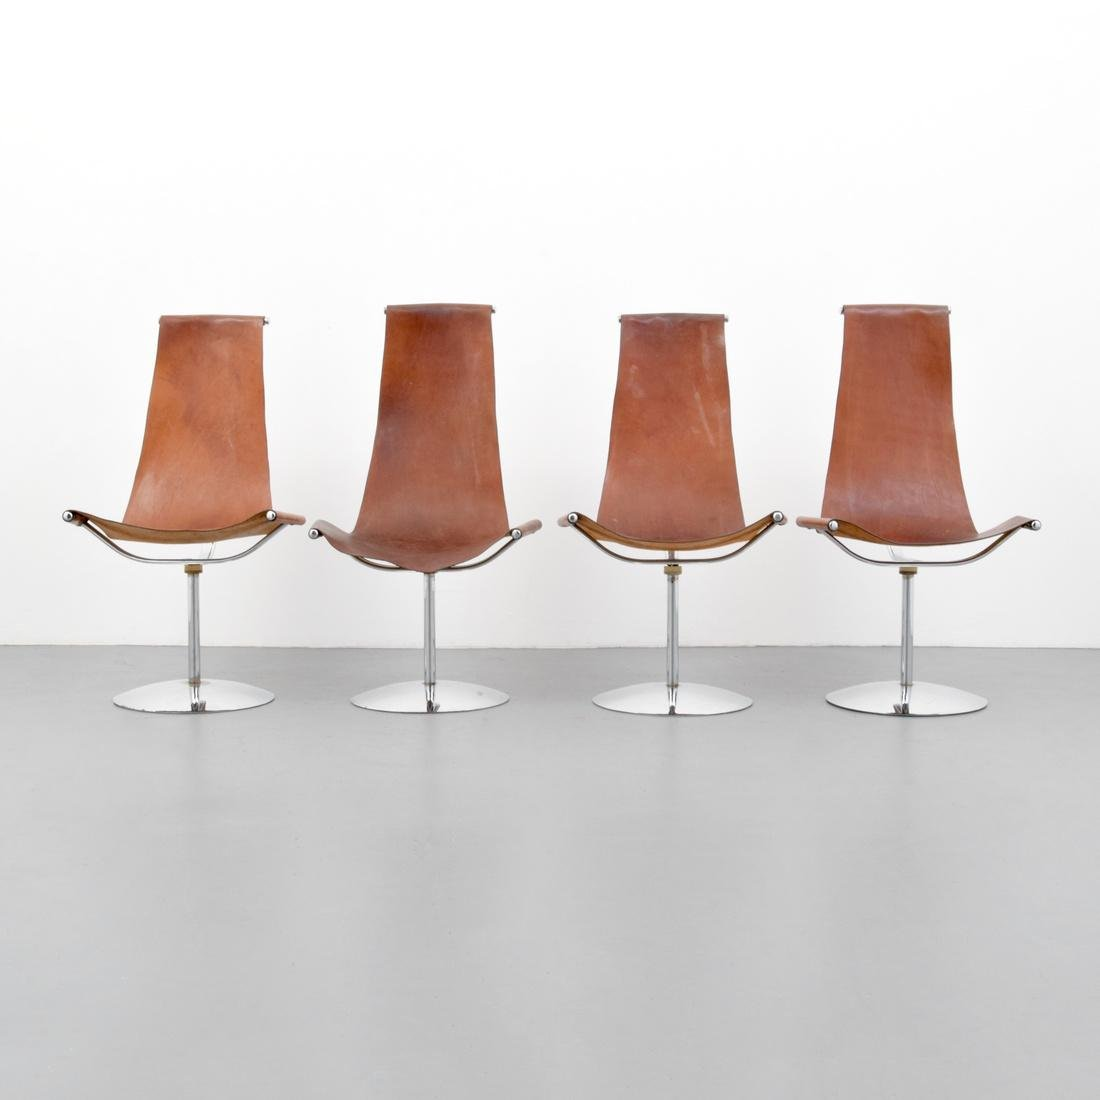 4 Leather Sling Chairs, Manner of Laverne - 9